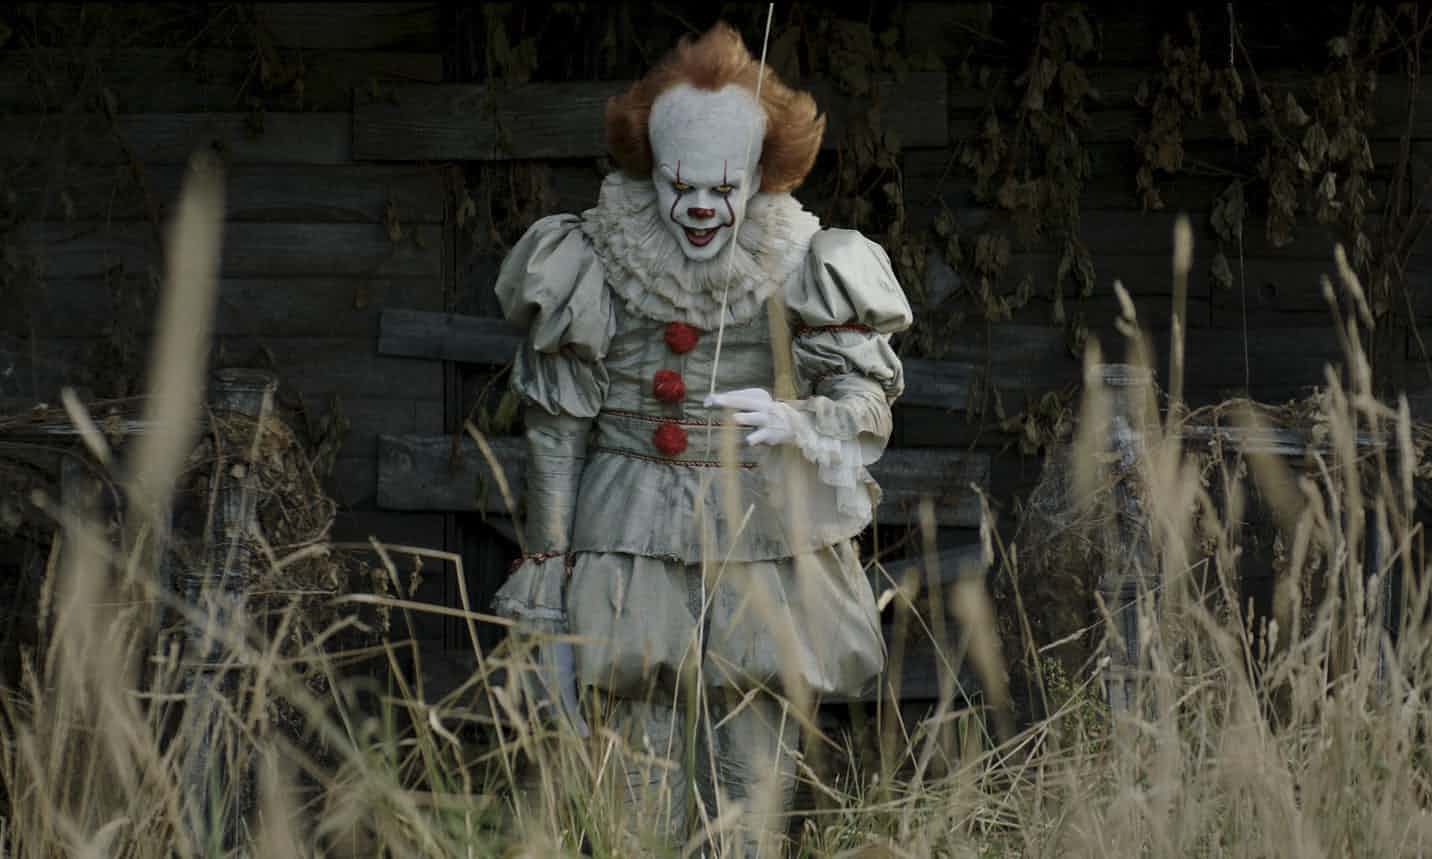 Pennywise si Badut Pembunuh dalam film IT September 2017 / photo courtesy of Guardian.